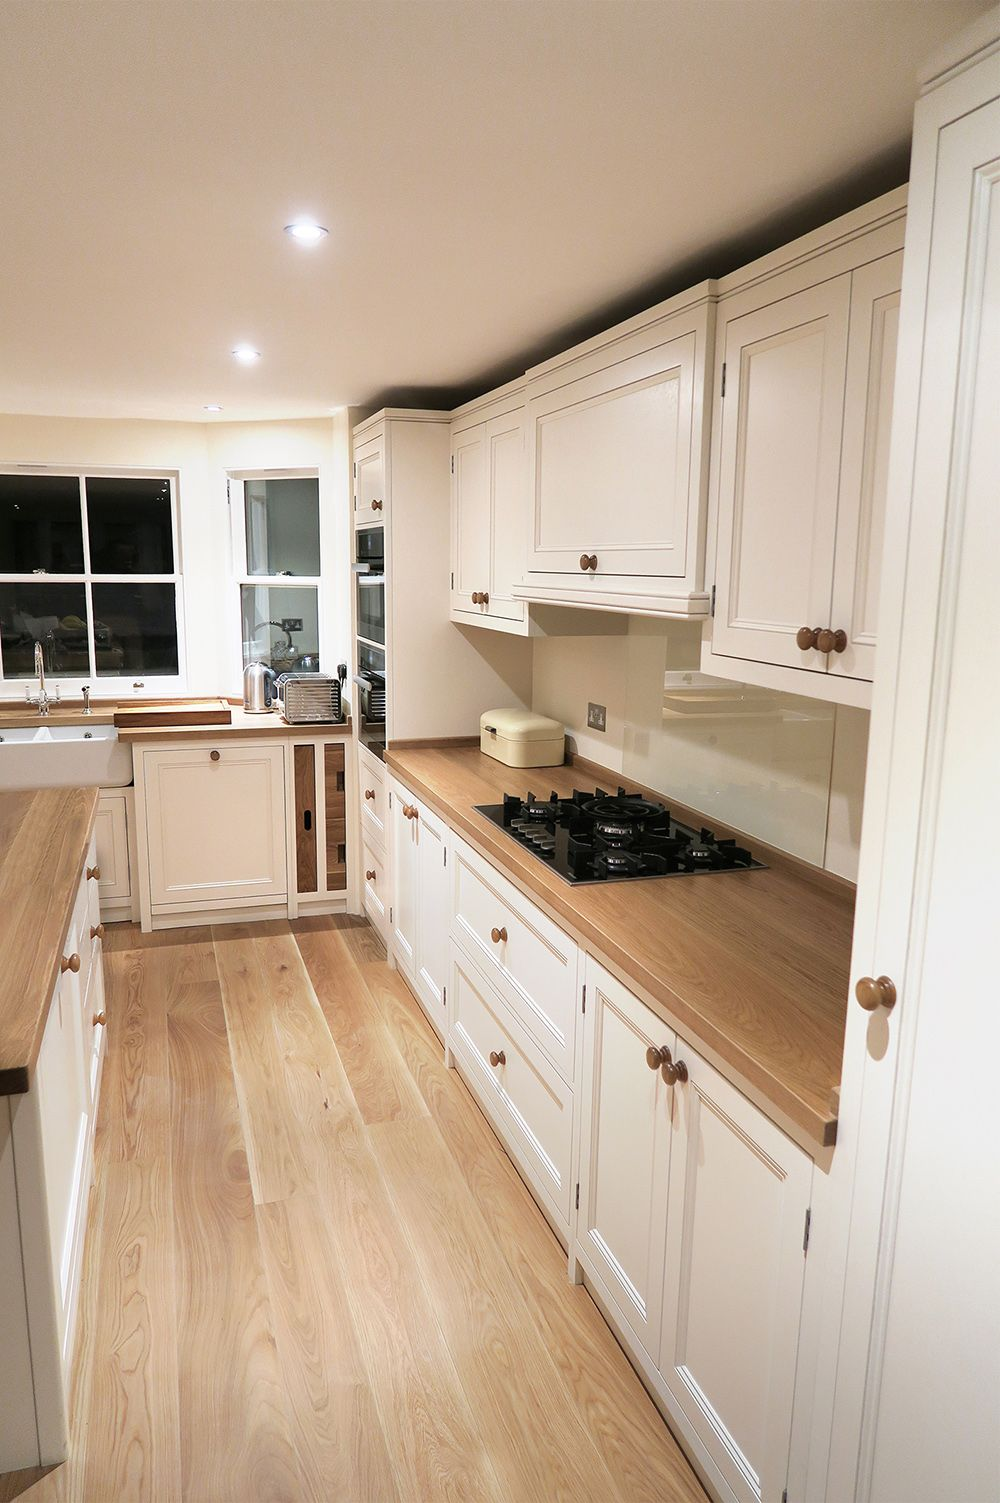 The solid Oak floorboards perfectly match the worktops and